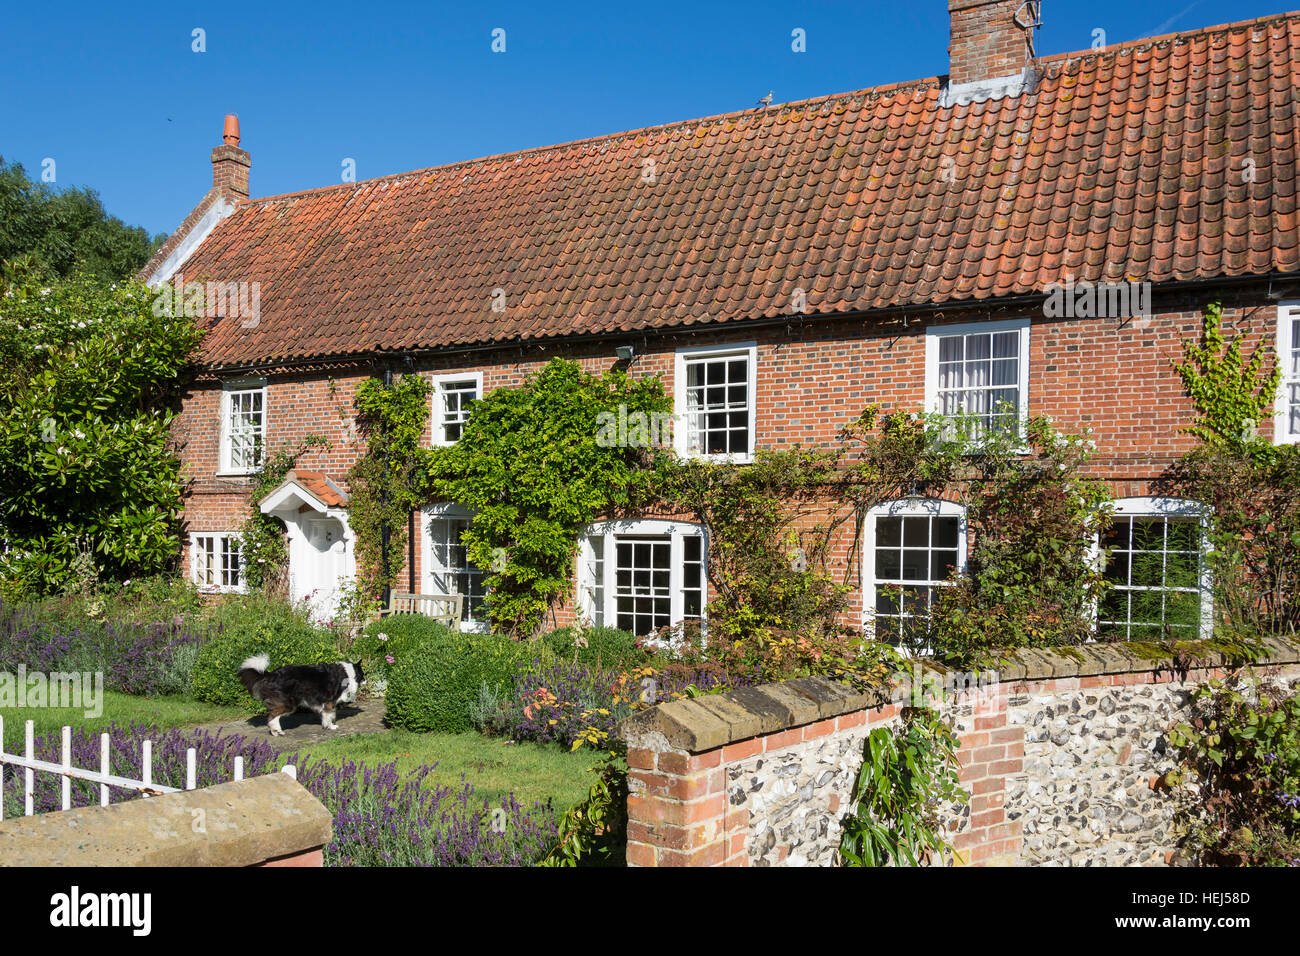 Country cottage and garden, South Creake, Norfolk, England, United Kingdom - Stock Image